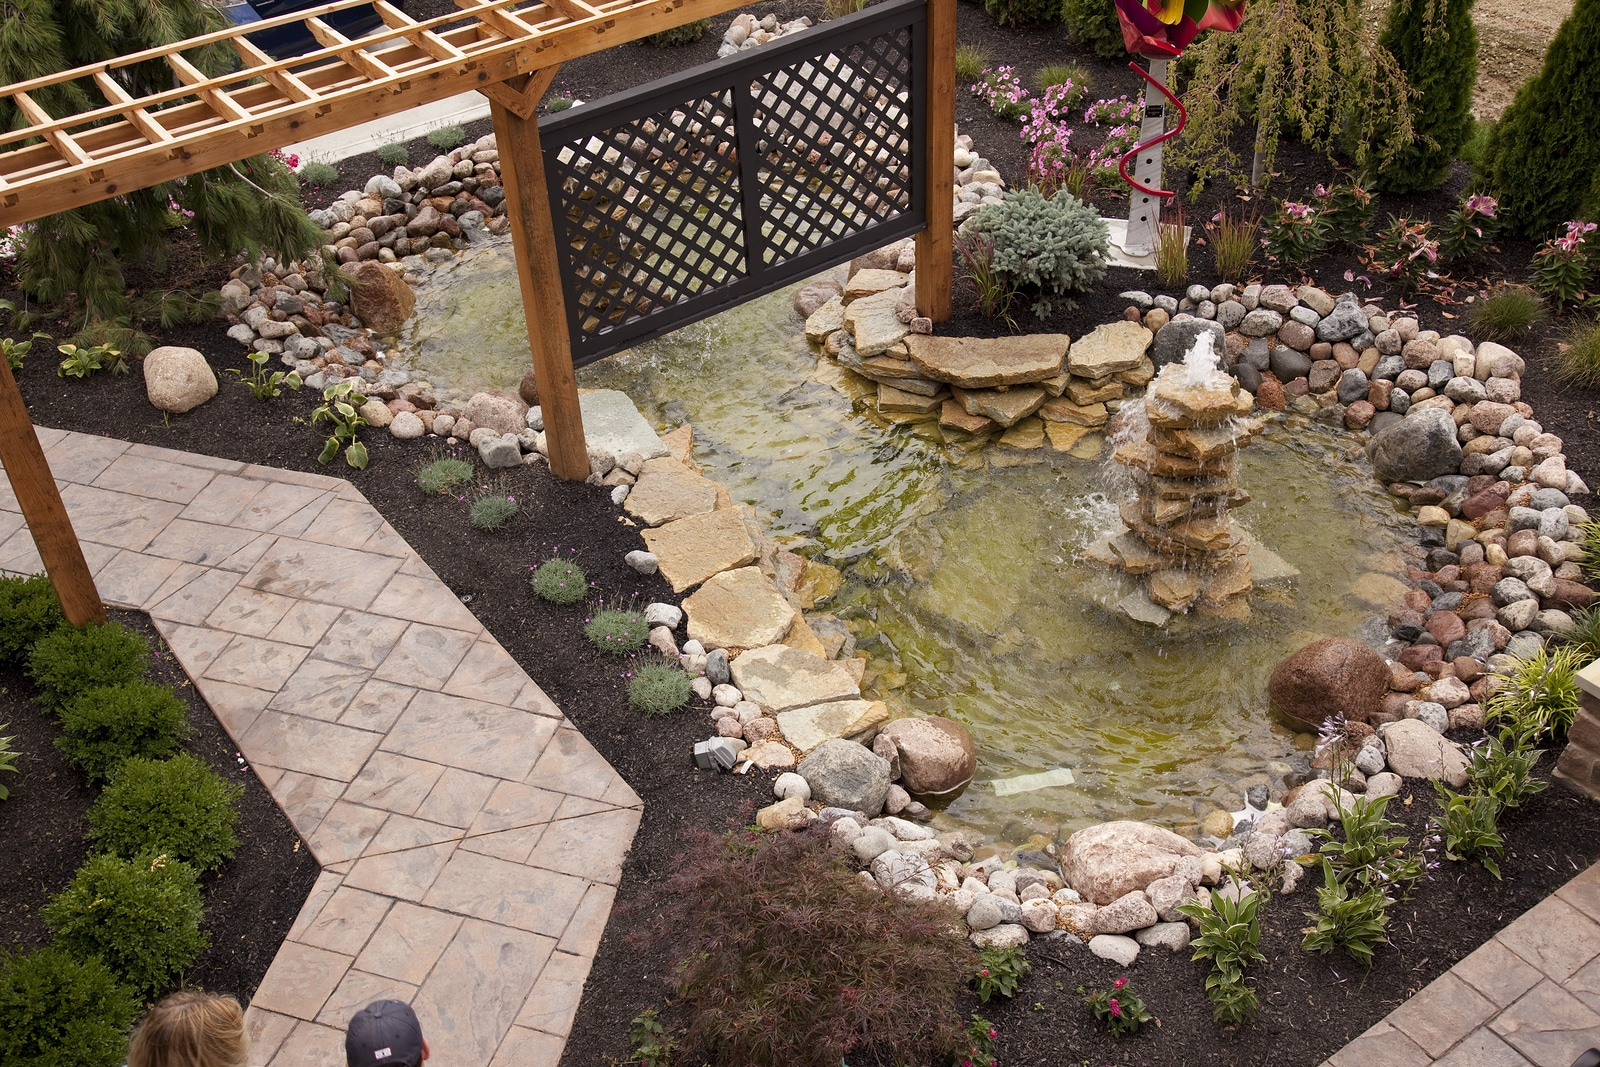 Landscape design services in beach haven nj for Landscape design services